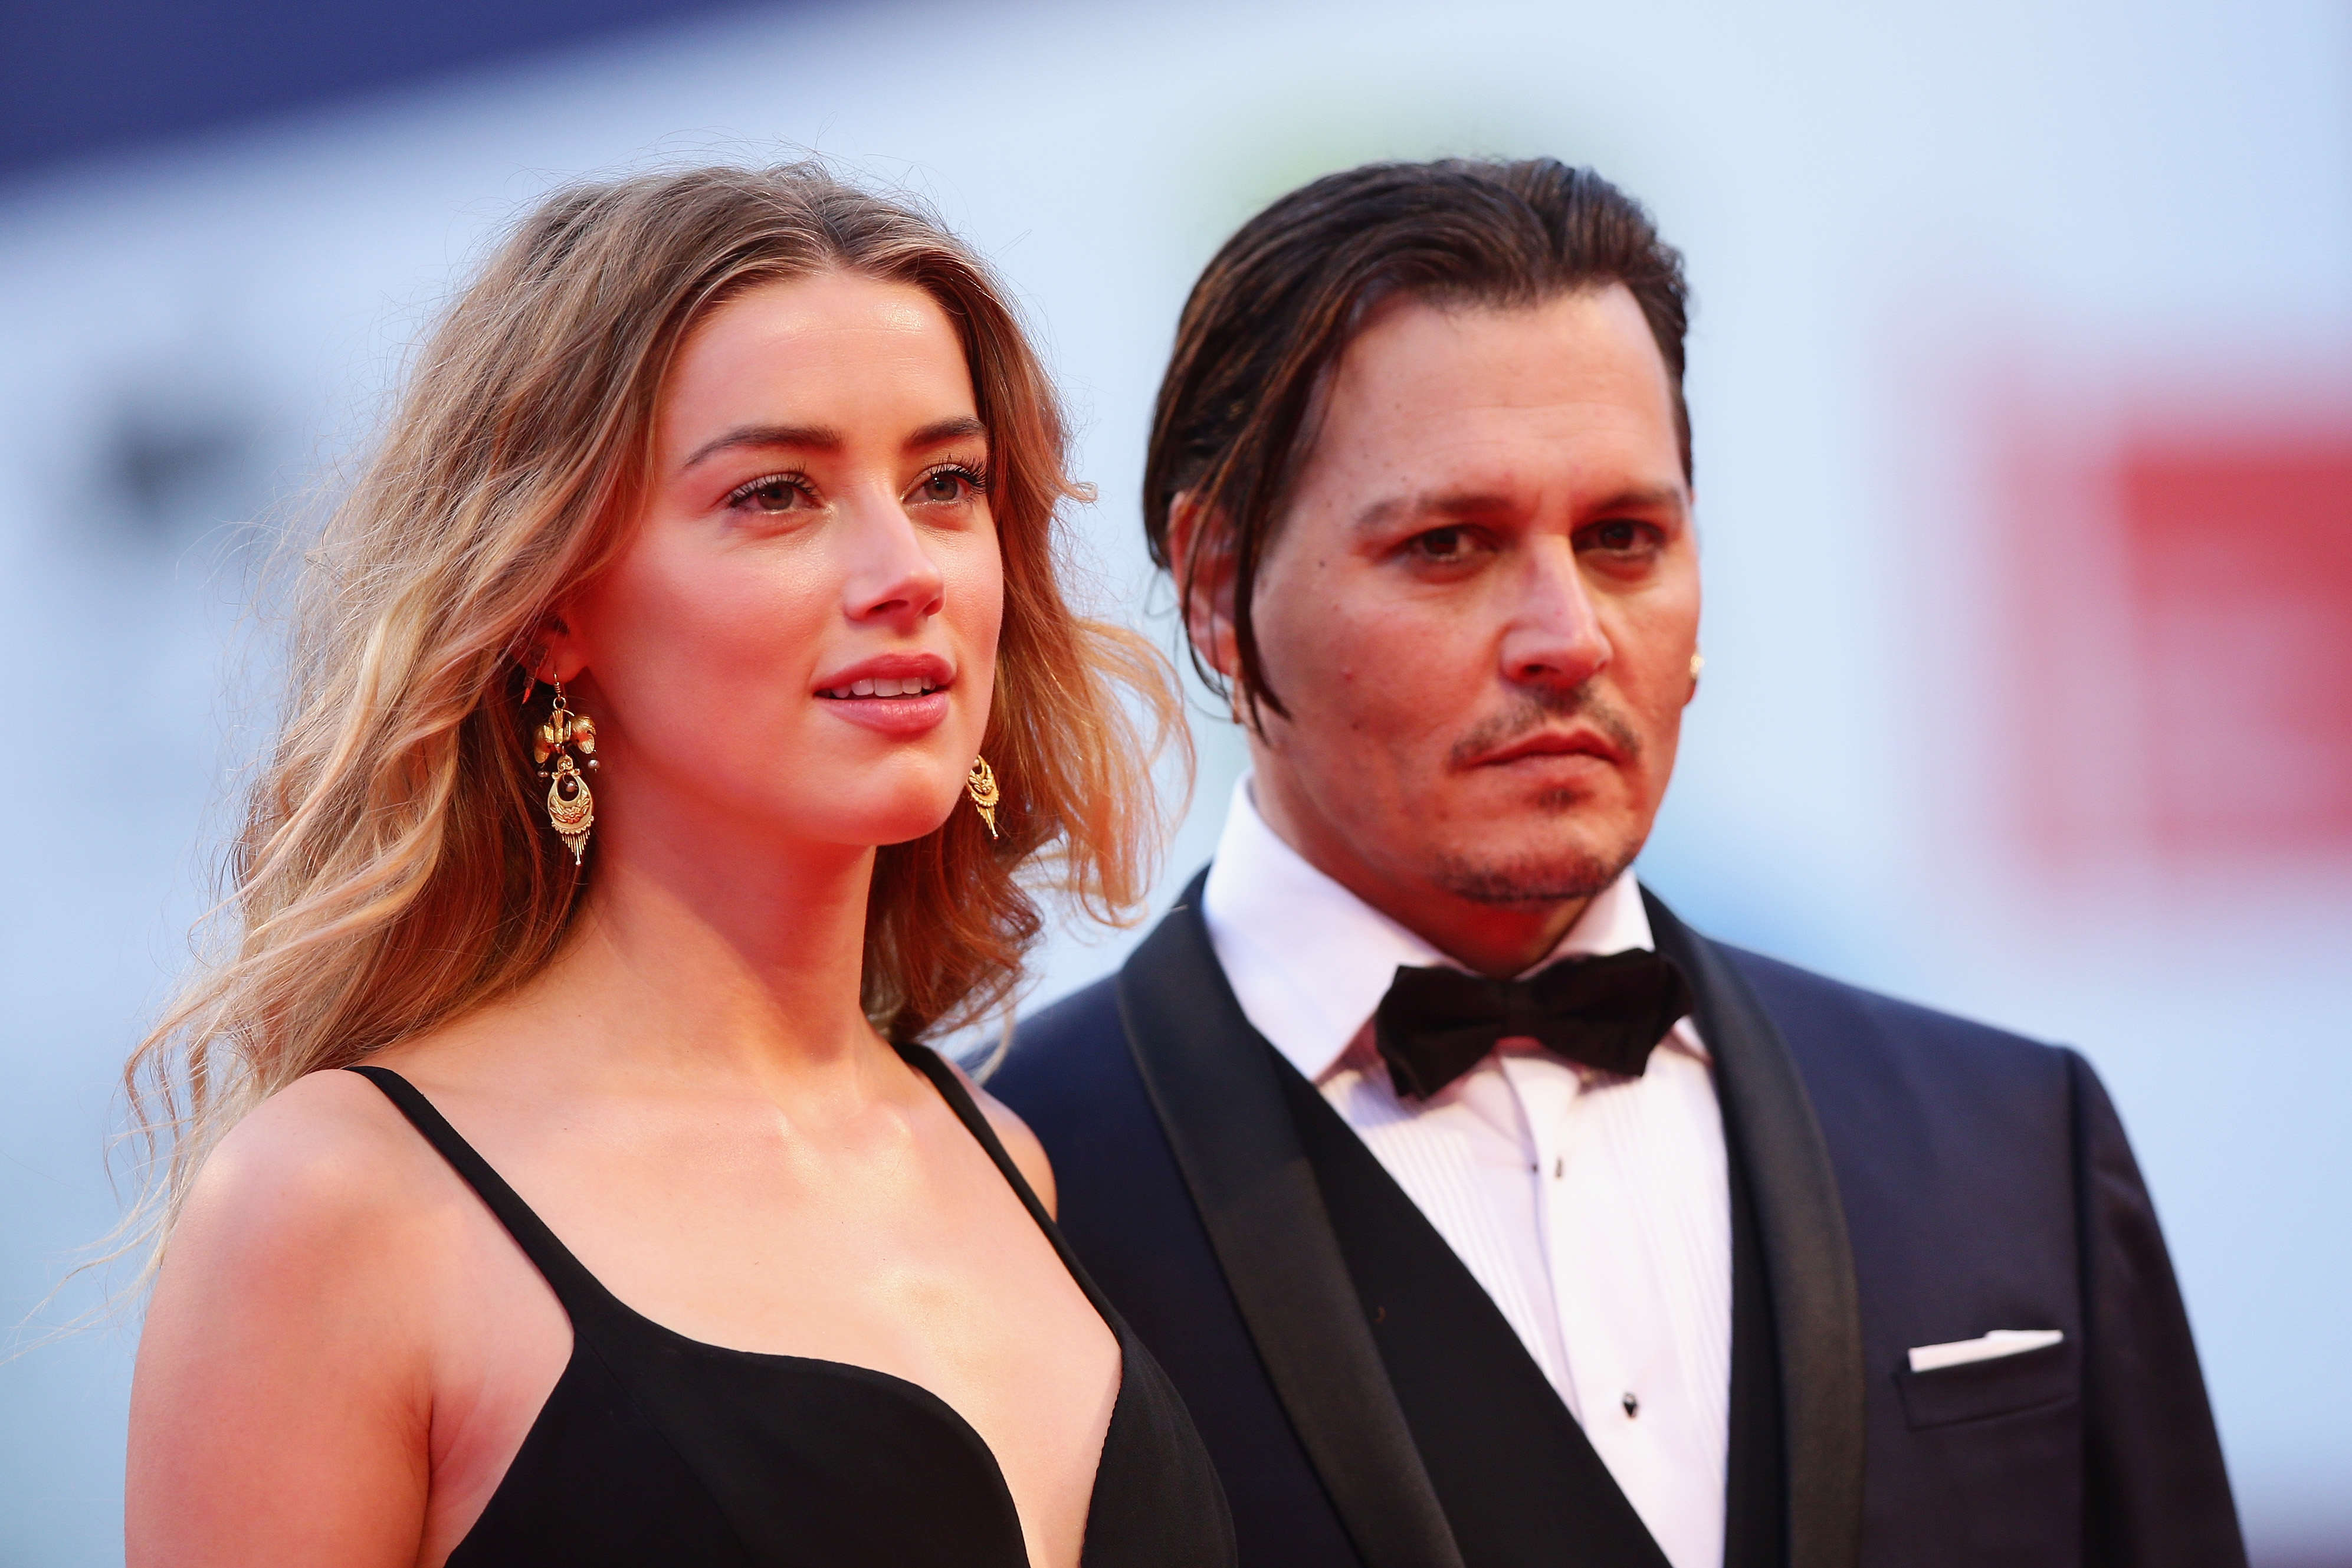 Amber Heard And Johnny Depps Divorce Just Took A Disappointing Turn GettyImages 486487546